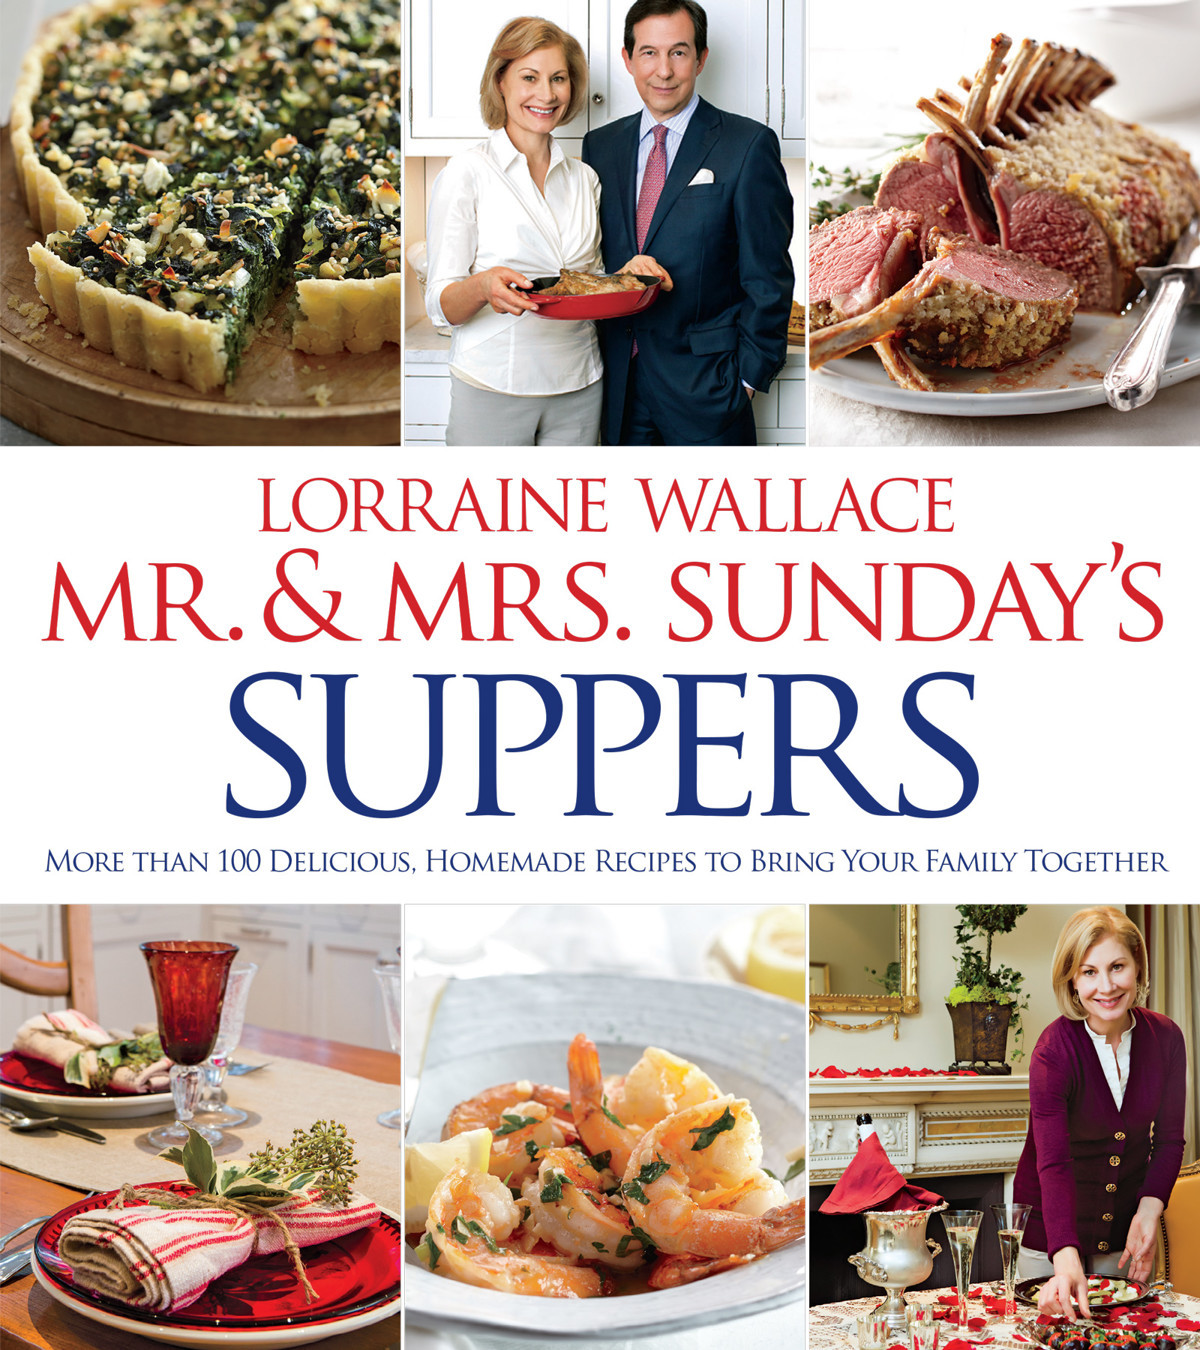 Mr. and Mrs. Sunday's Suppers: More than 100 Delicious, Homemade Recipes to Bring Your Family Together free download